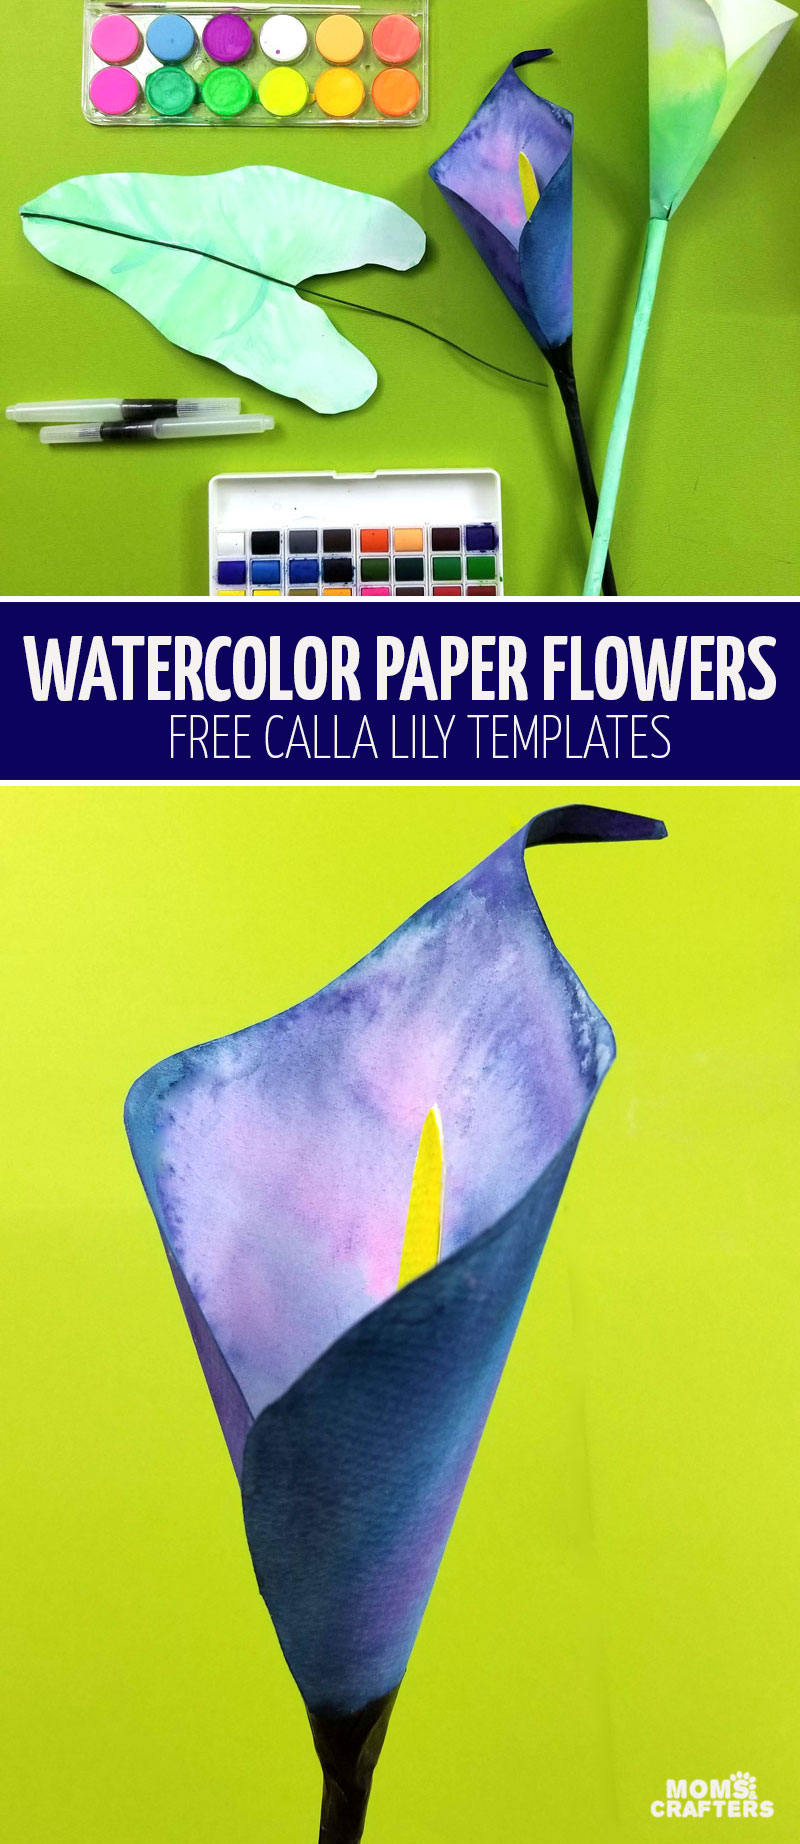 Click to learn how to make a paper calla lily with a free printable template! This fun paper flower tutorial and templates helps you make 3D watercolor flowers - a fun Mother's Day craft and DIY gift for teens to give!